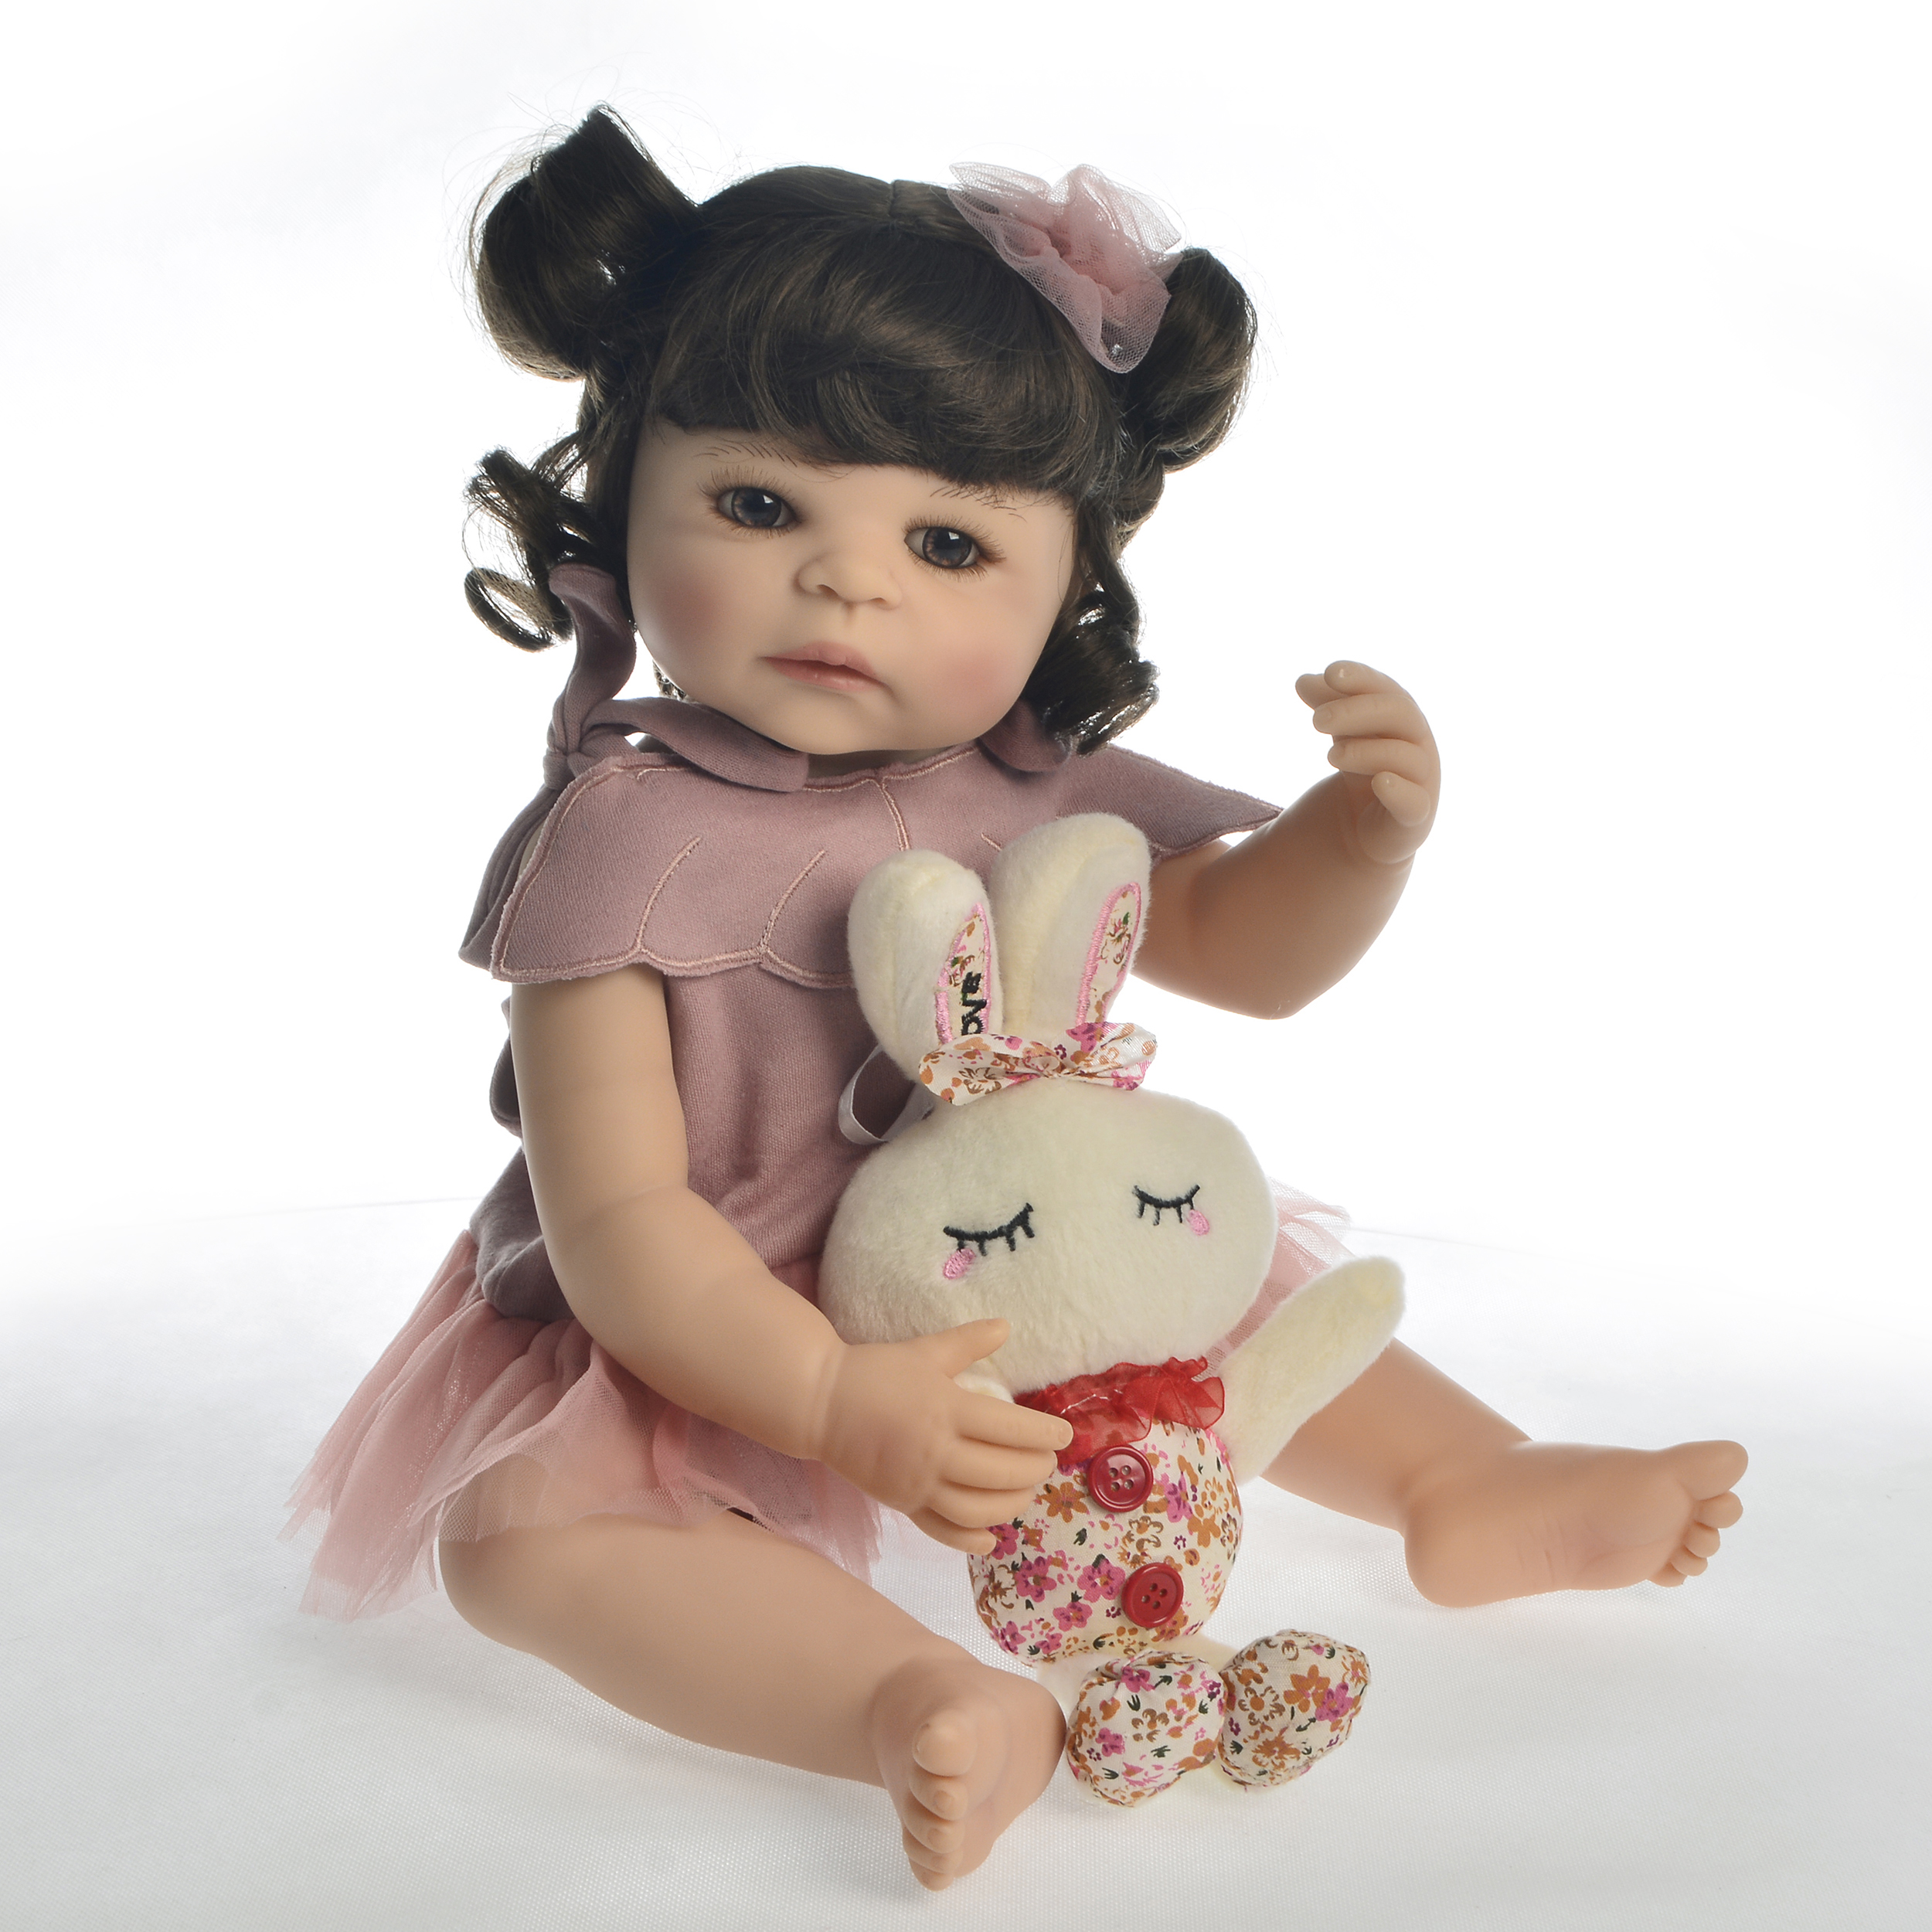 Fashion 22 Inch Realistic Girl Baby Doll Handmade Curly Hair Babies Reborn Boneca Silicone Kid Holiday Gift House Toy Can BathFashion 22 Inch Realistic Girl Baby Doll Handmade Curly Hair Babies Reborn Boneca Silicone Kid Holiday Gift House Toy Can Bath